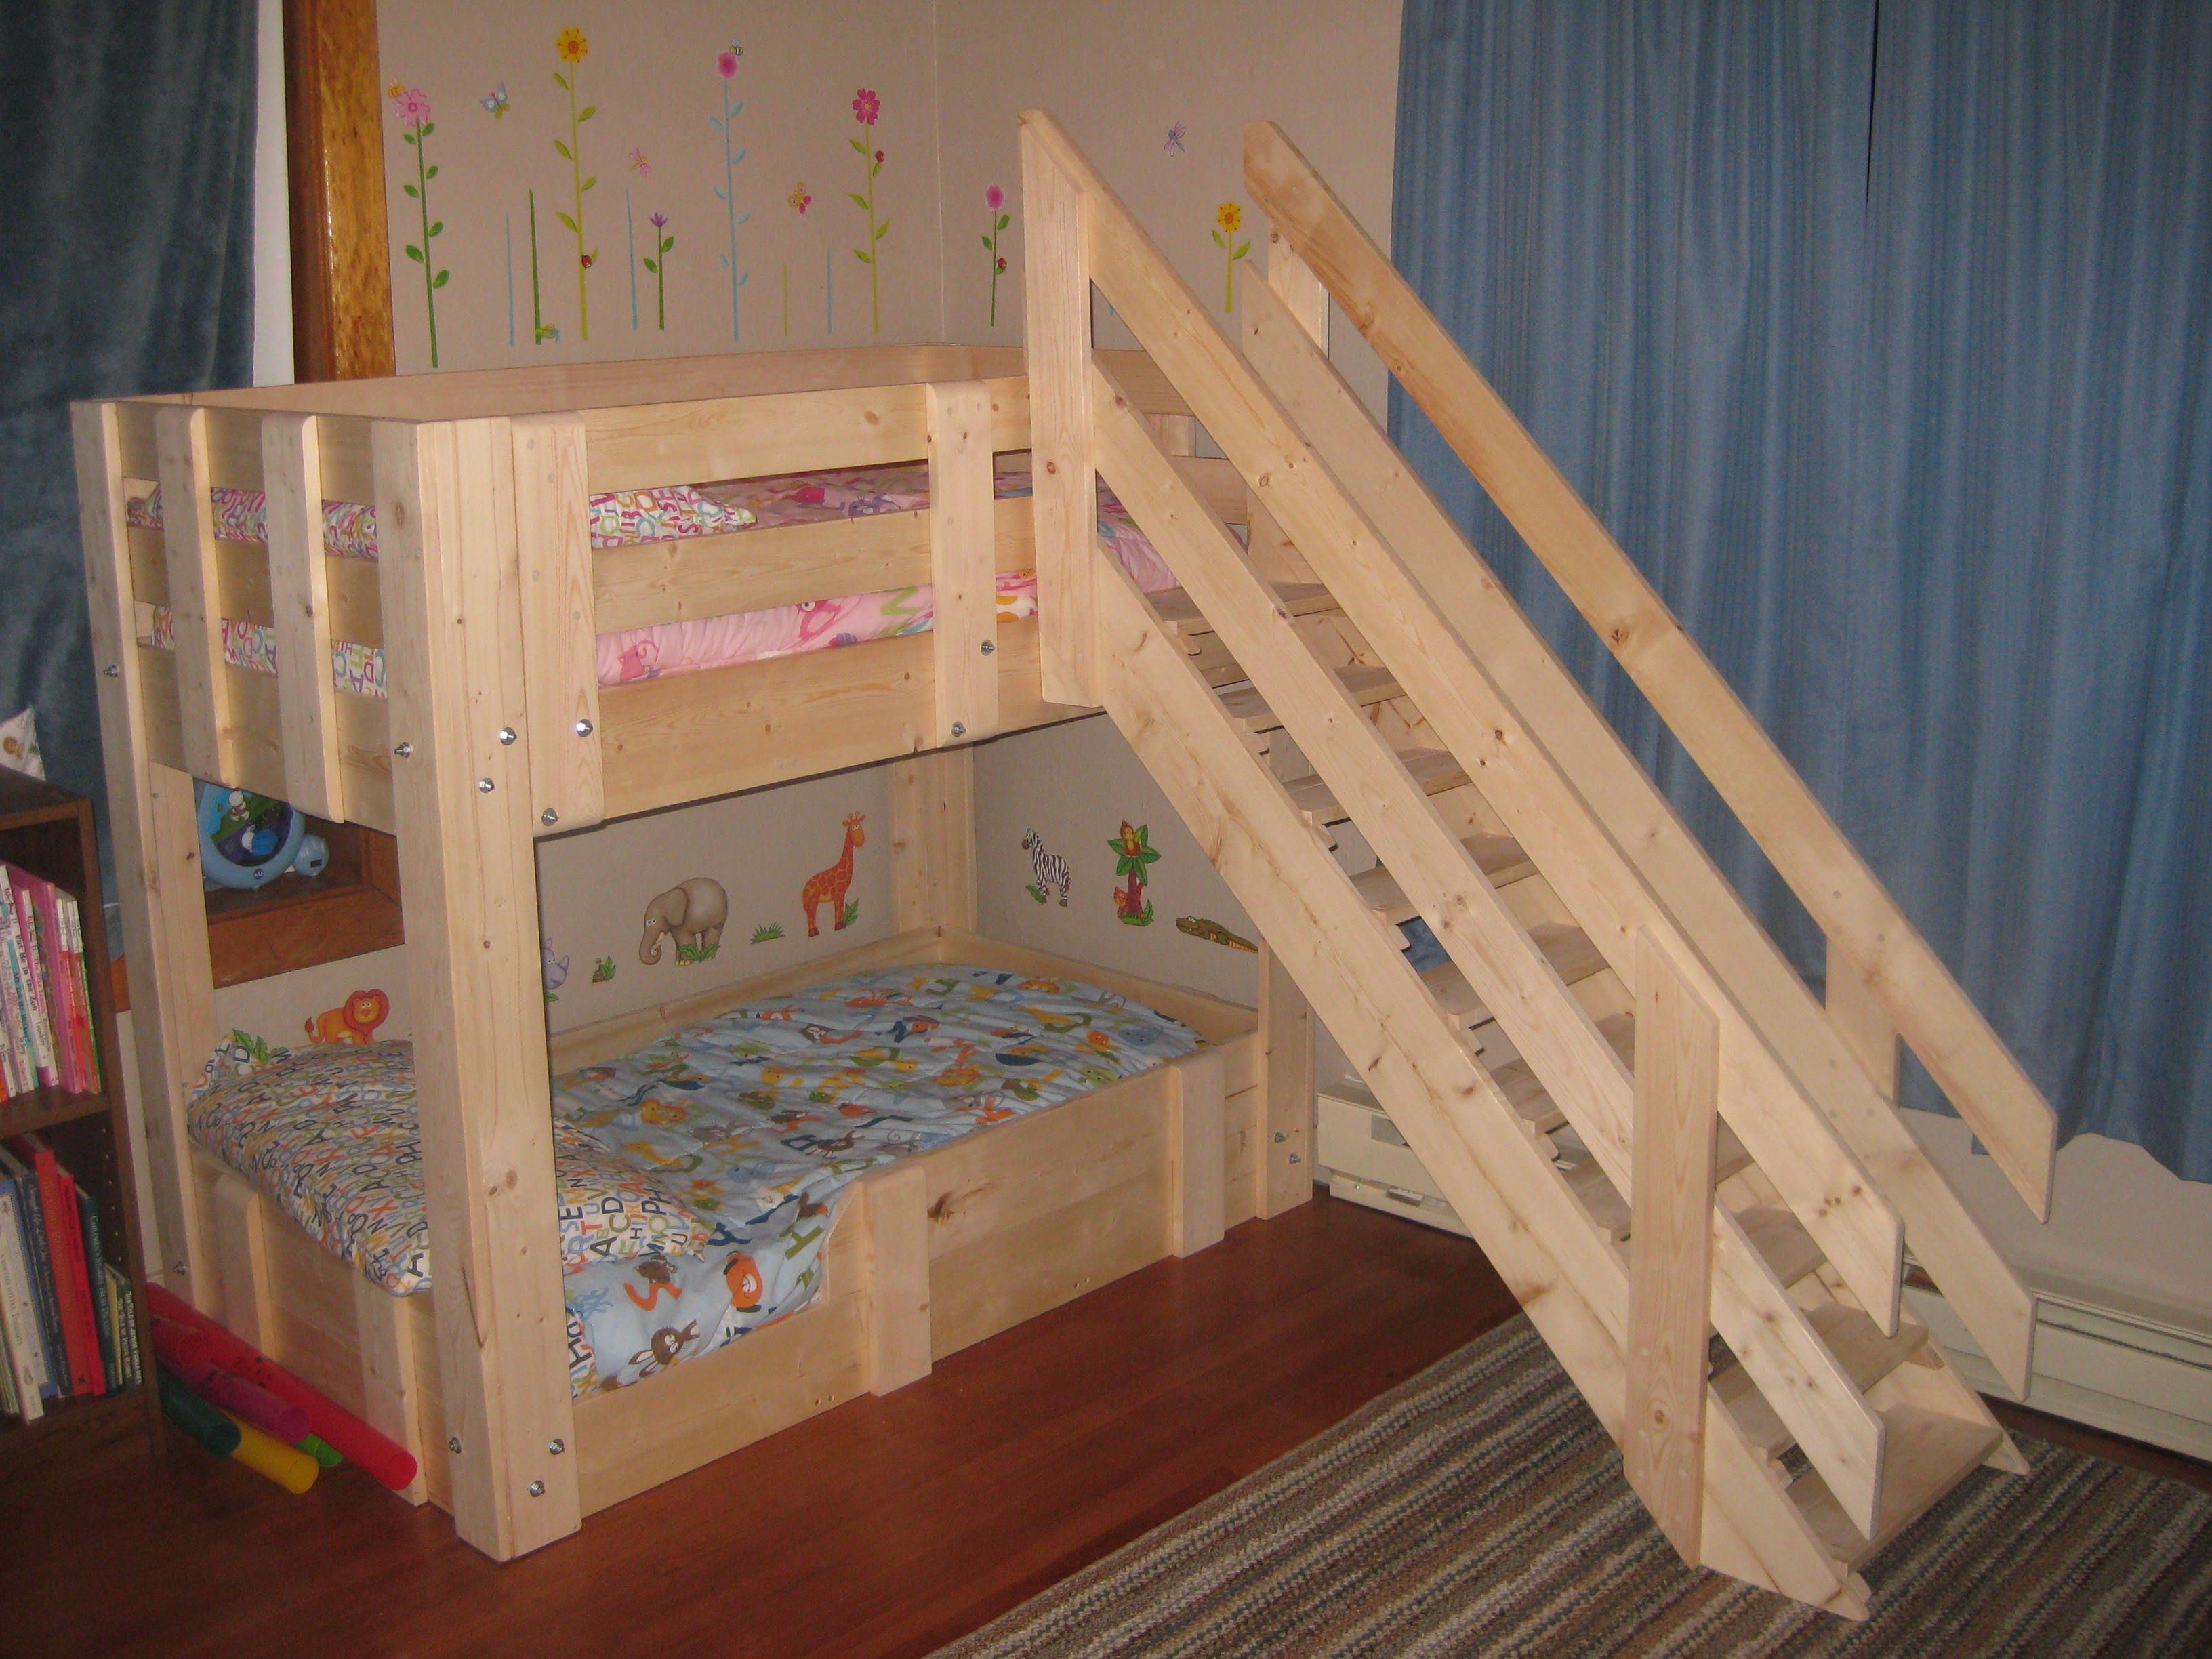 Our new toddler bunk beds, built by a friend. These take a